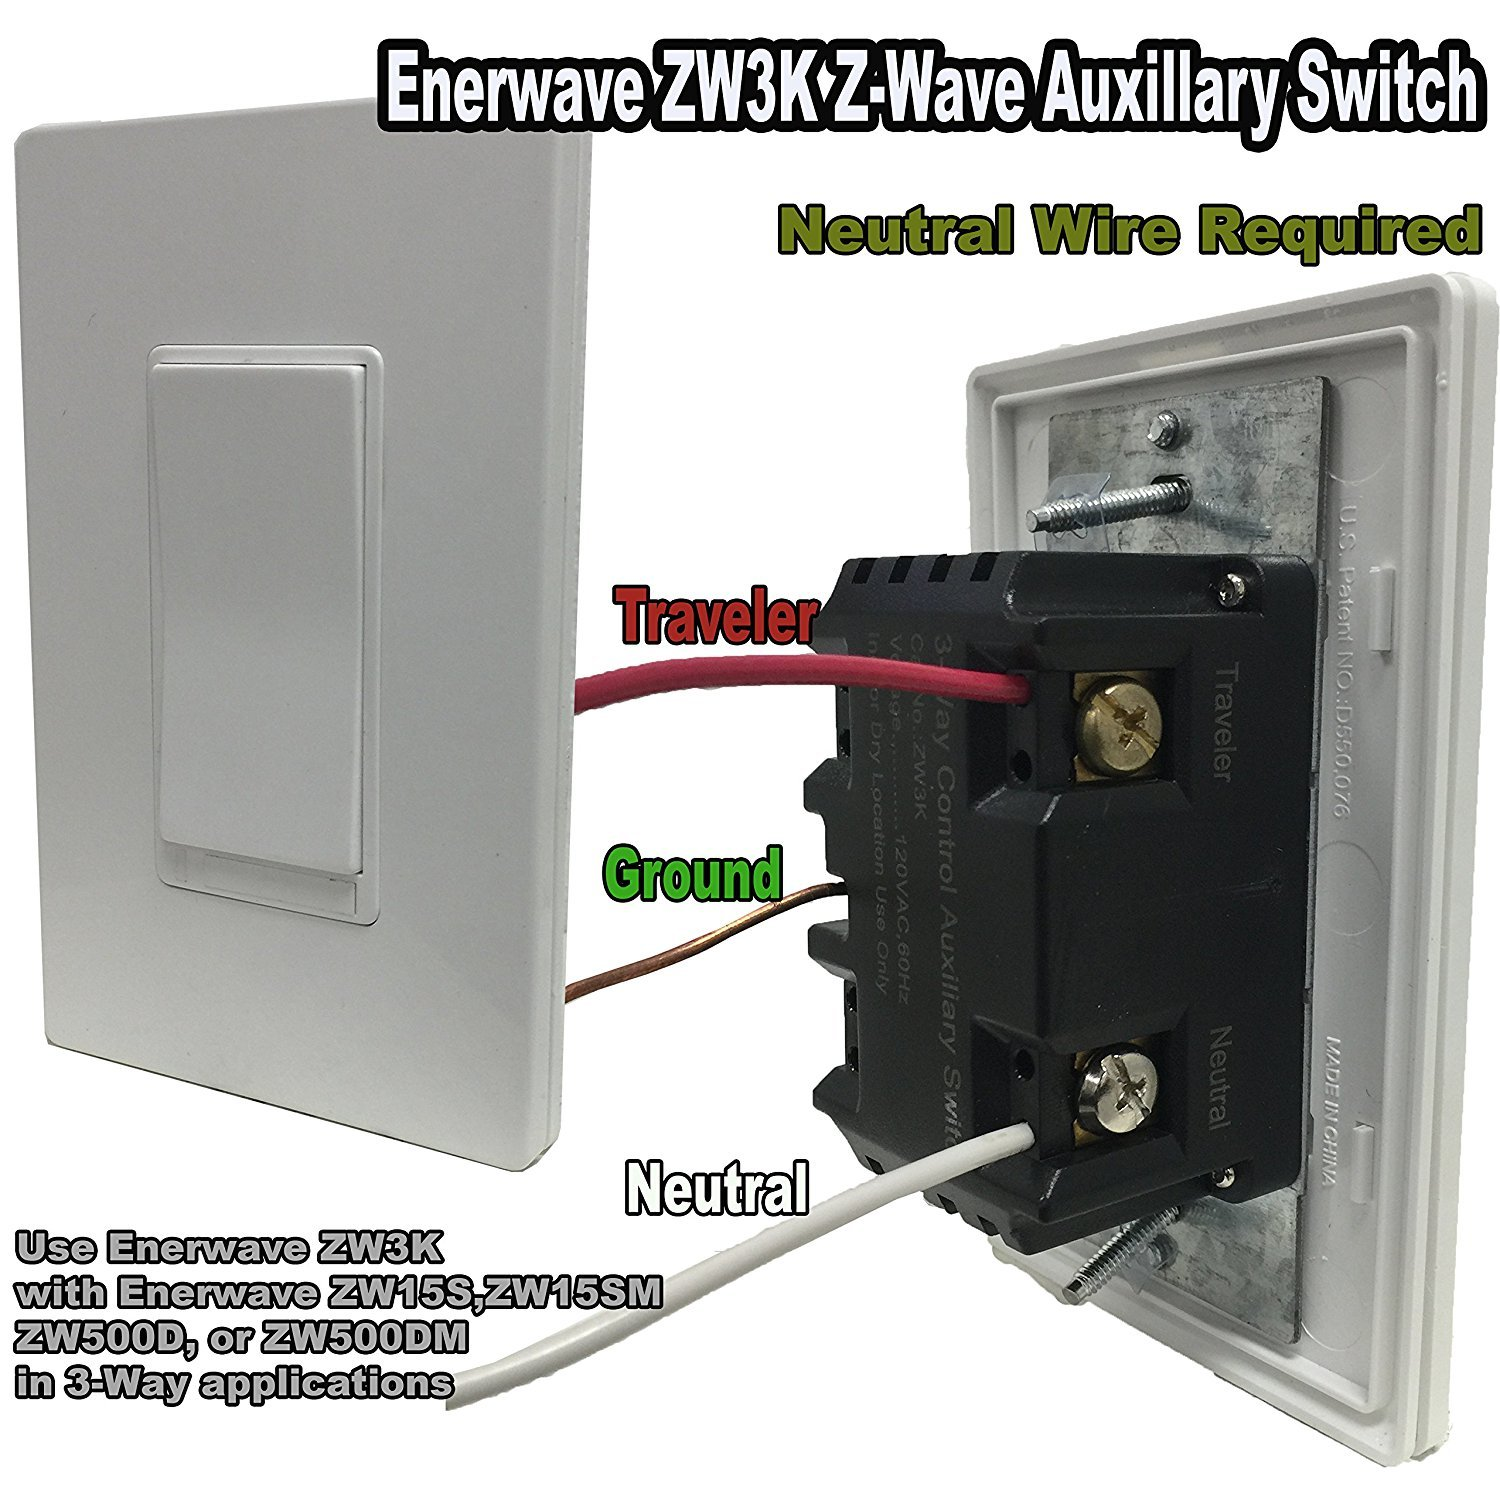 Add On Smart Switch By Enerwave 3 Way Z Wave Home Neutral Automation Lighting Light Zw3k Bk Wire Required